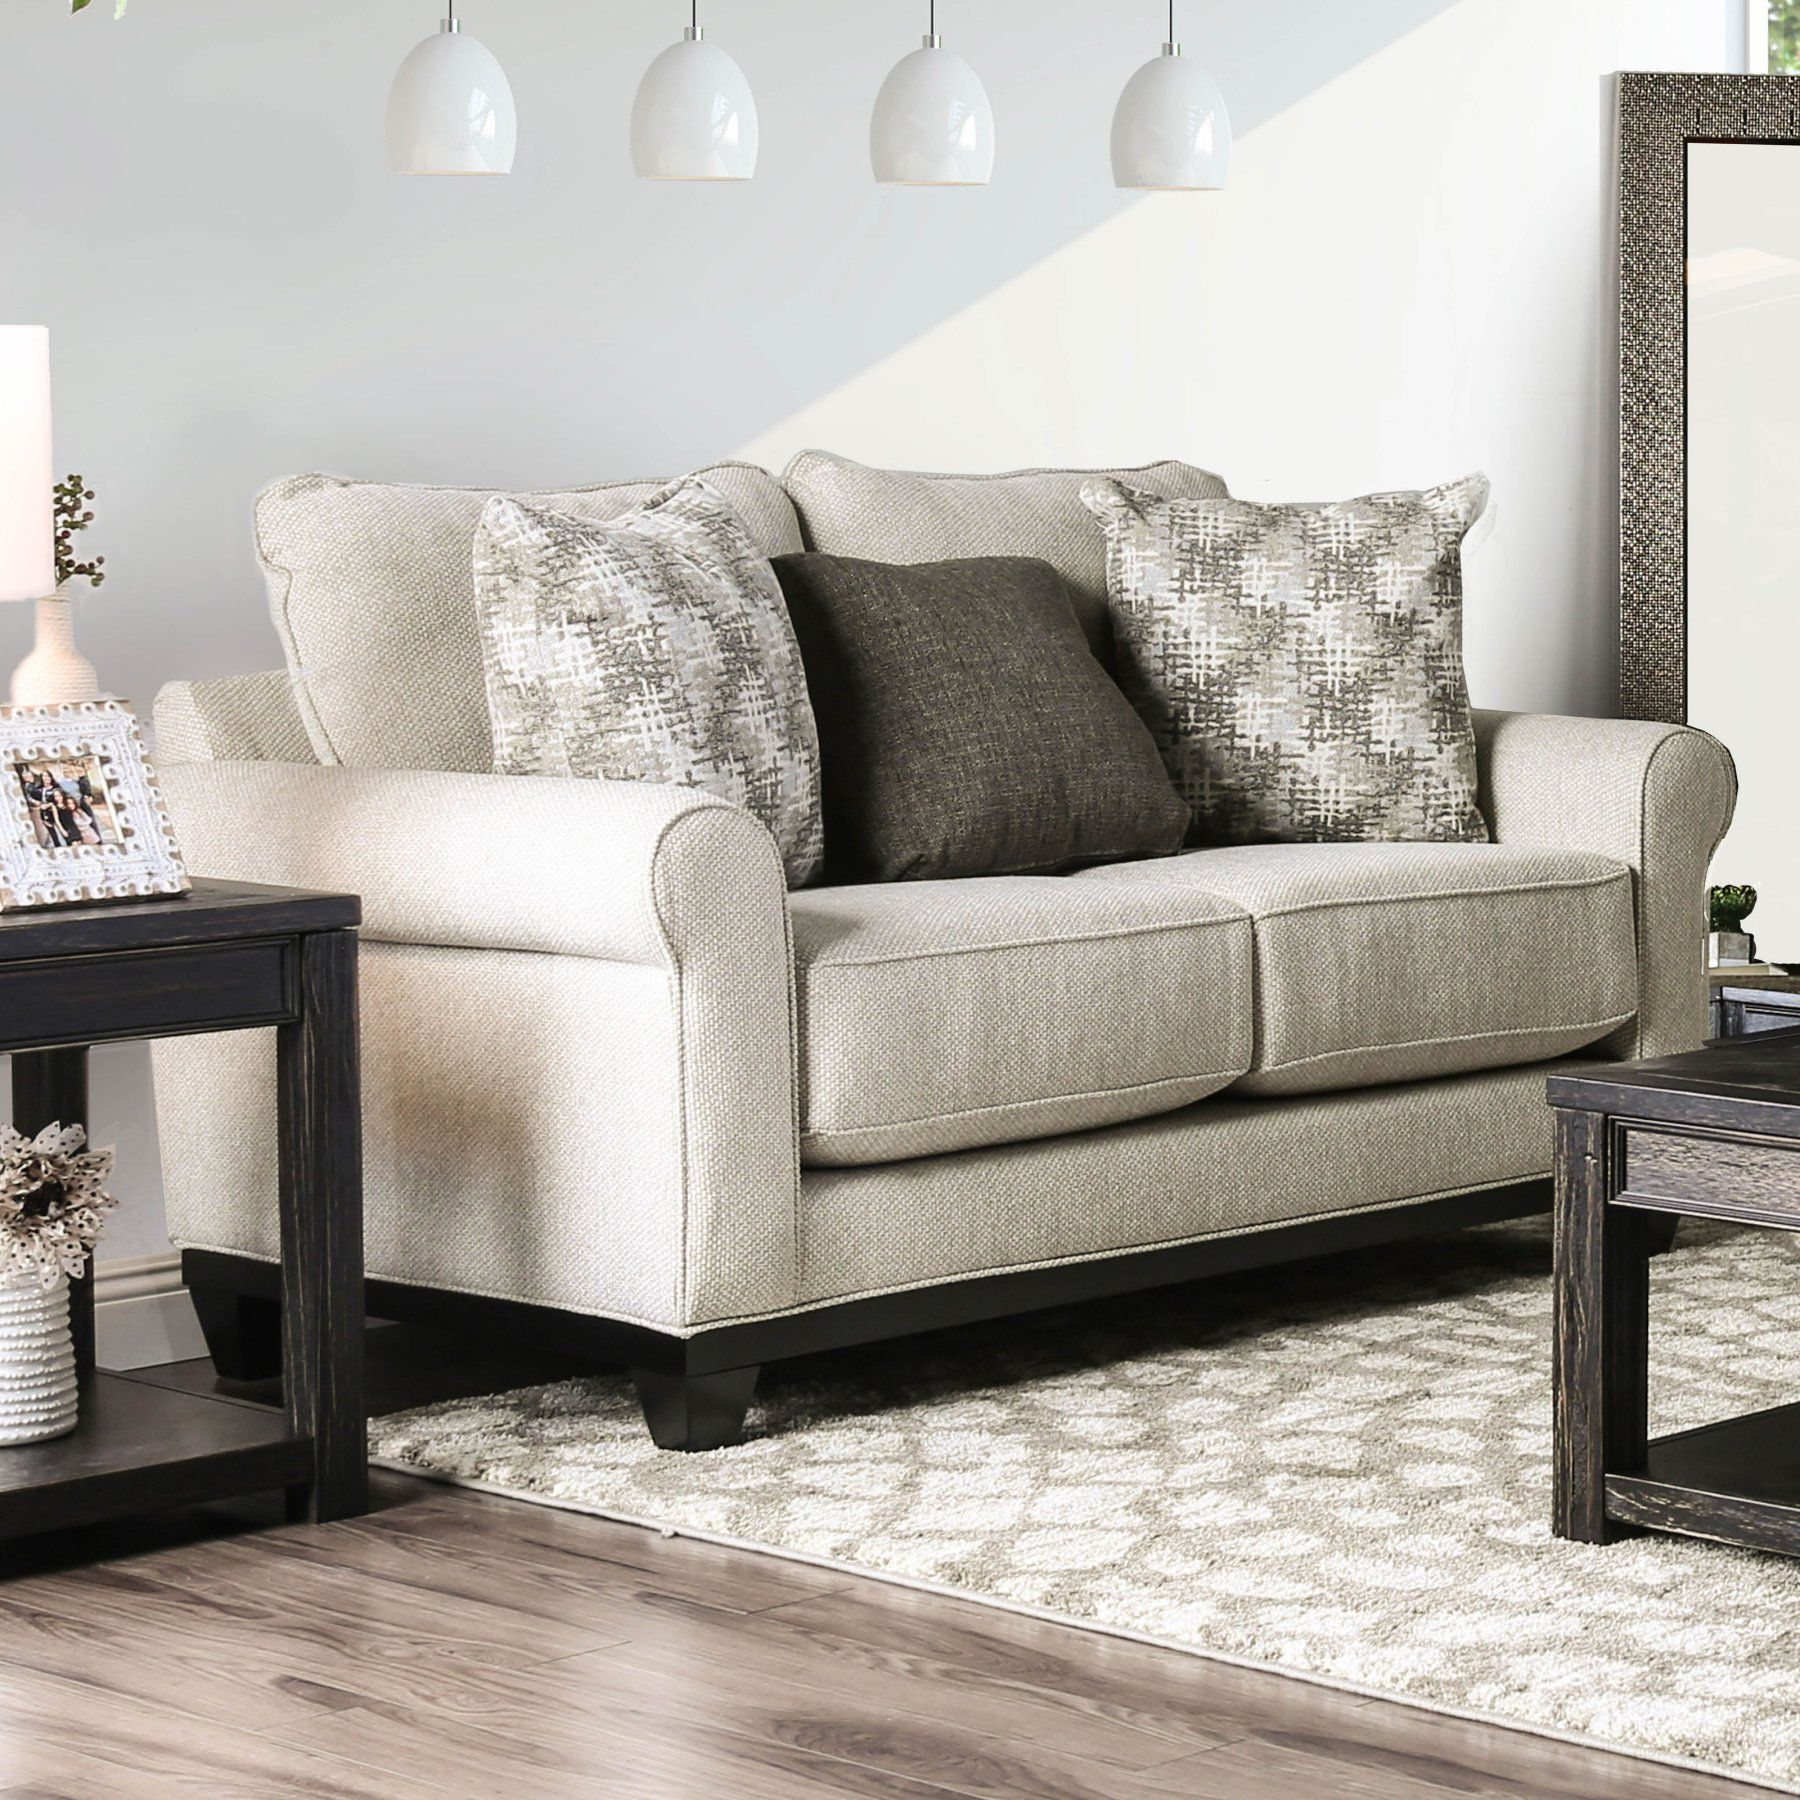 Furniture of America Glynndale Stain Resistant Loveseat in